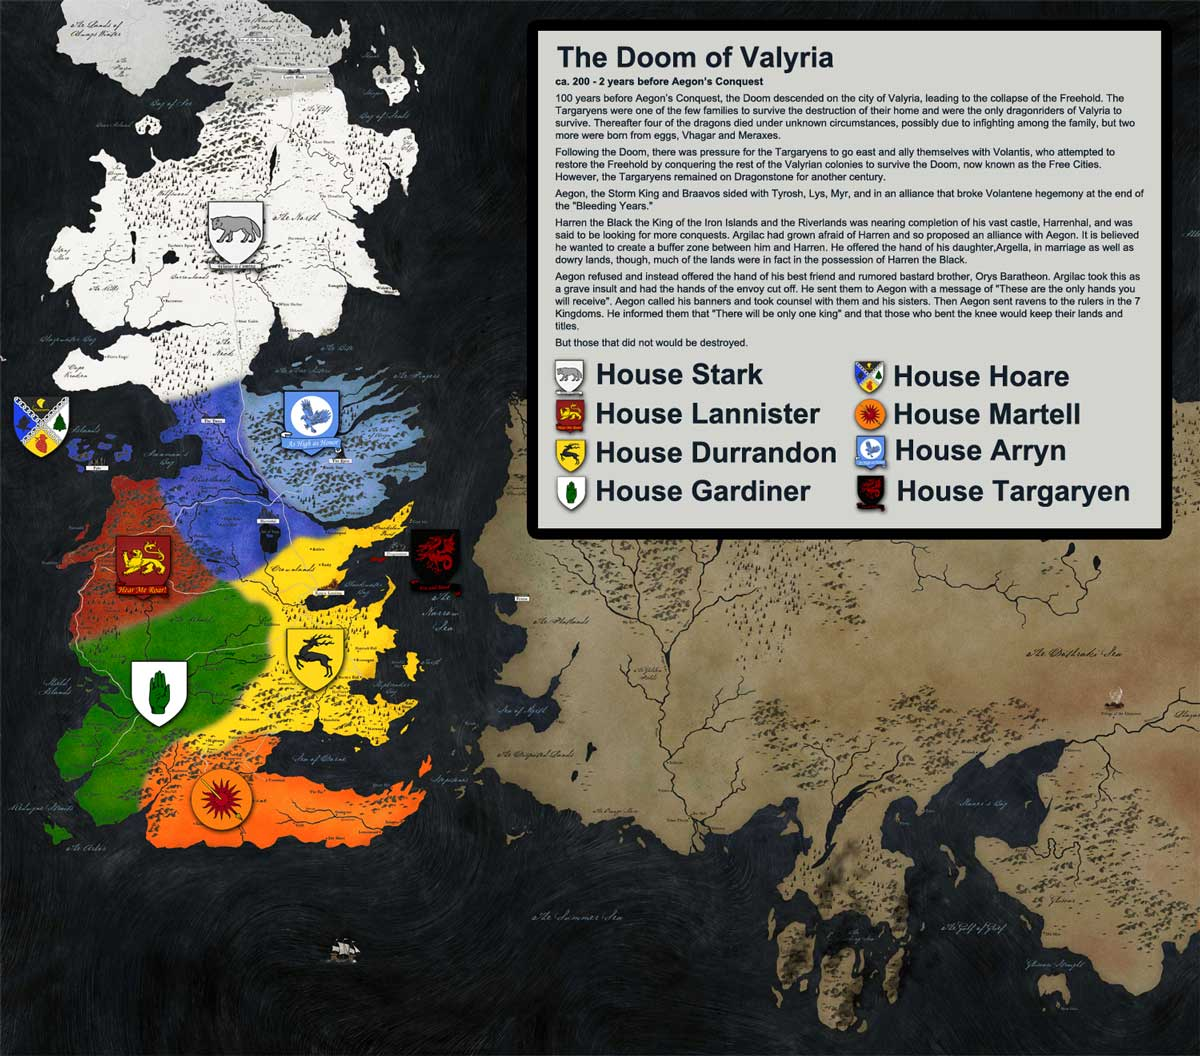 Song of Ice and Fire Doom of Valyria map